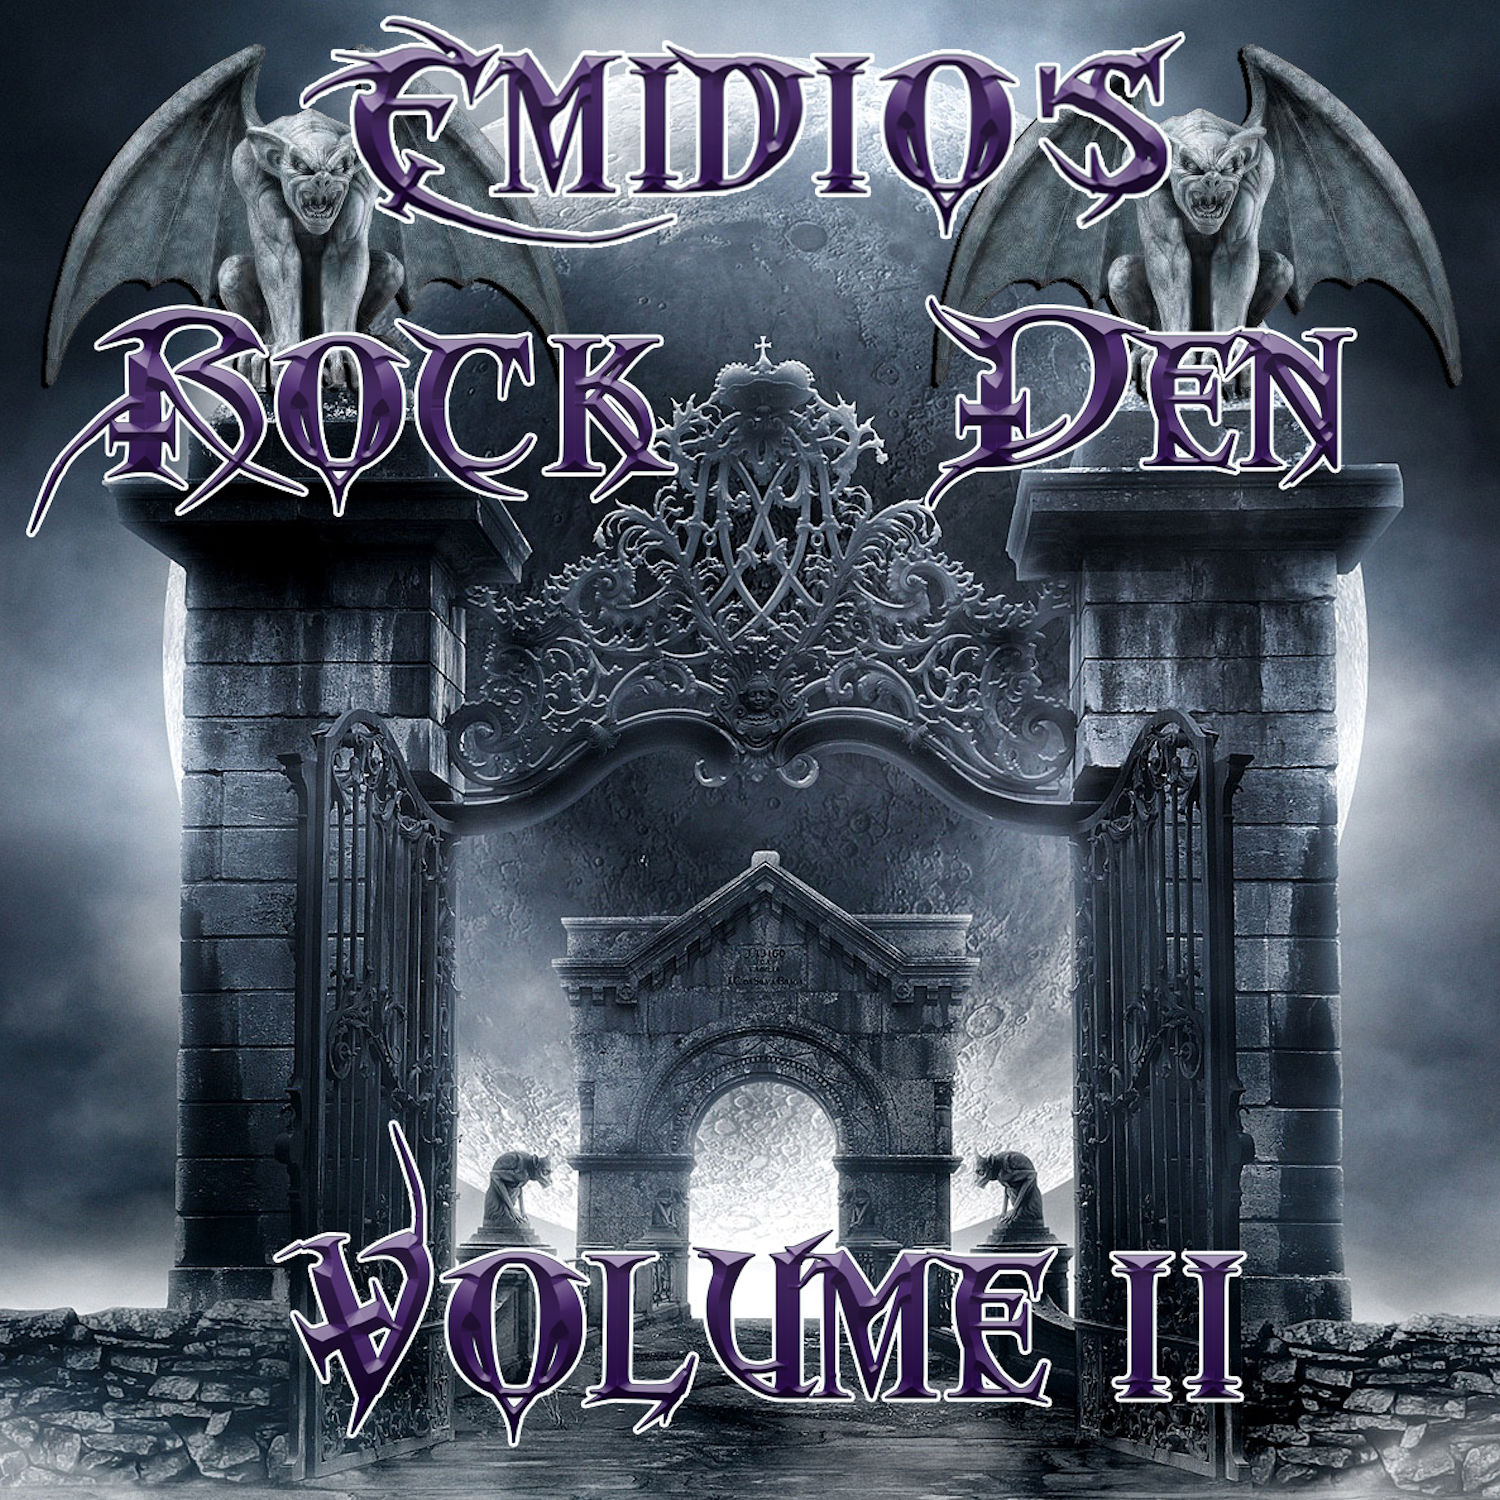 Emidio's Rock Den Volume Two